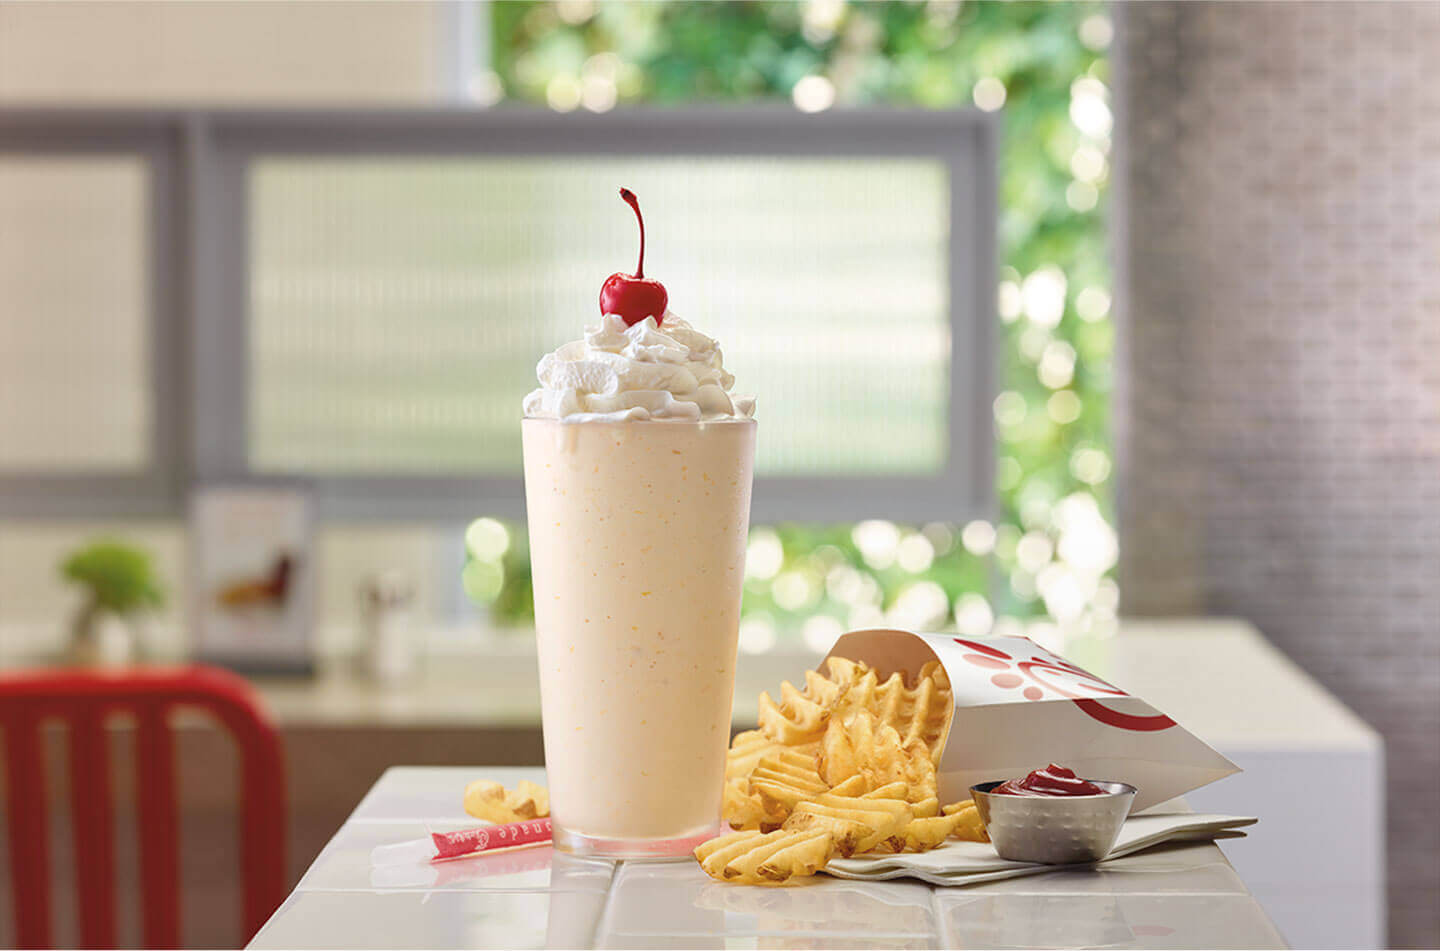 Peach milkshake with whipped cream and a cherry and a side of french fries